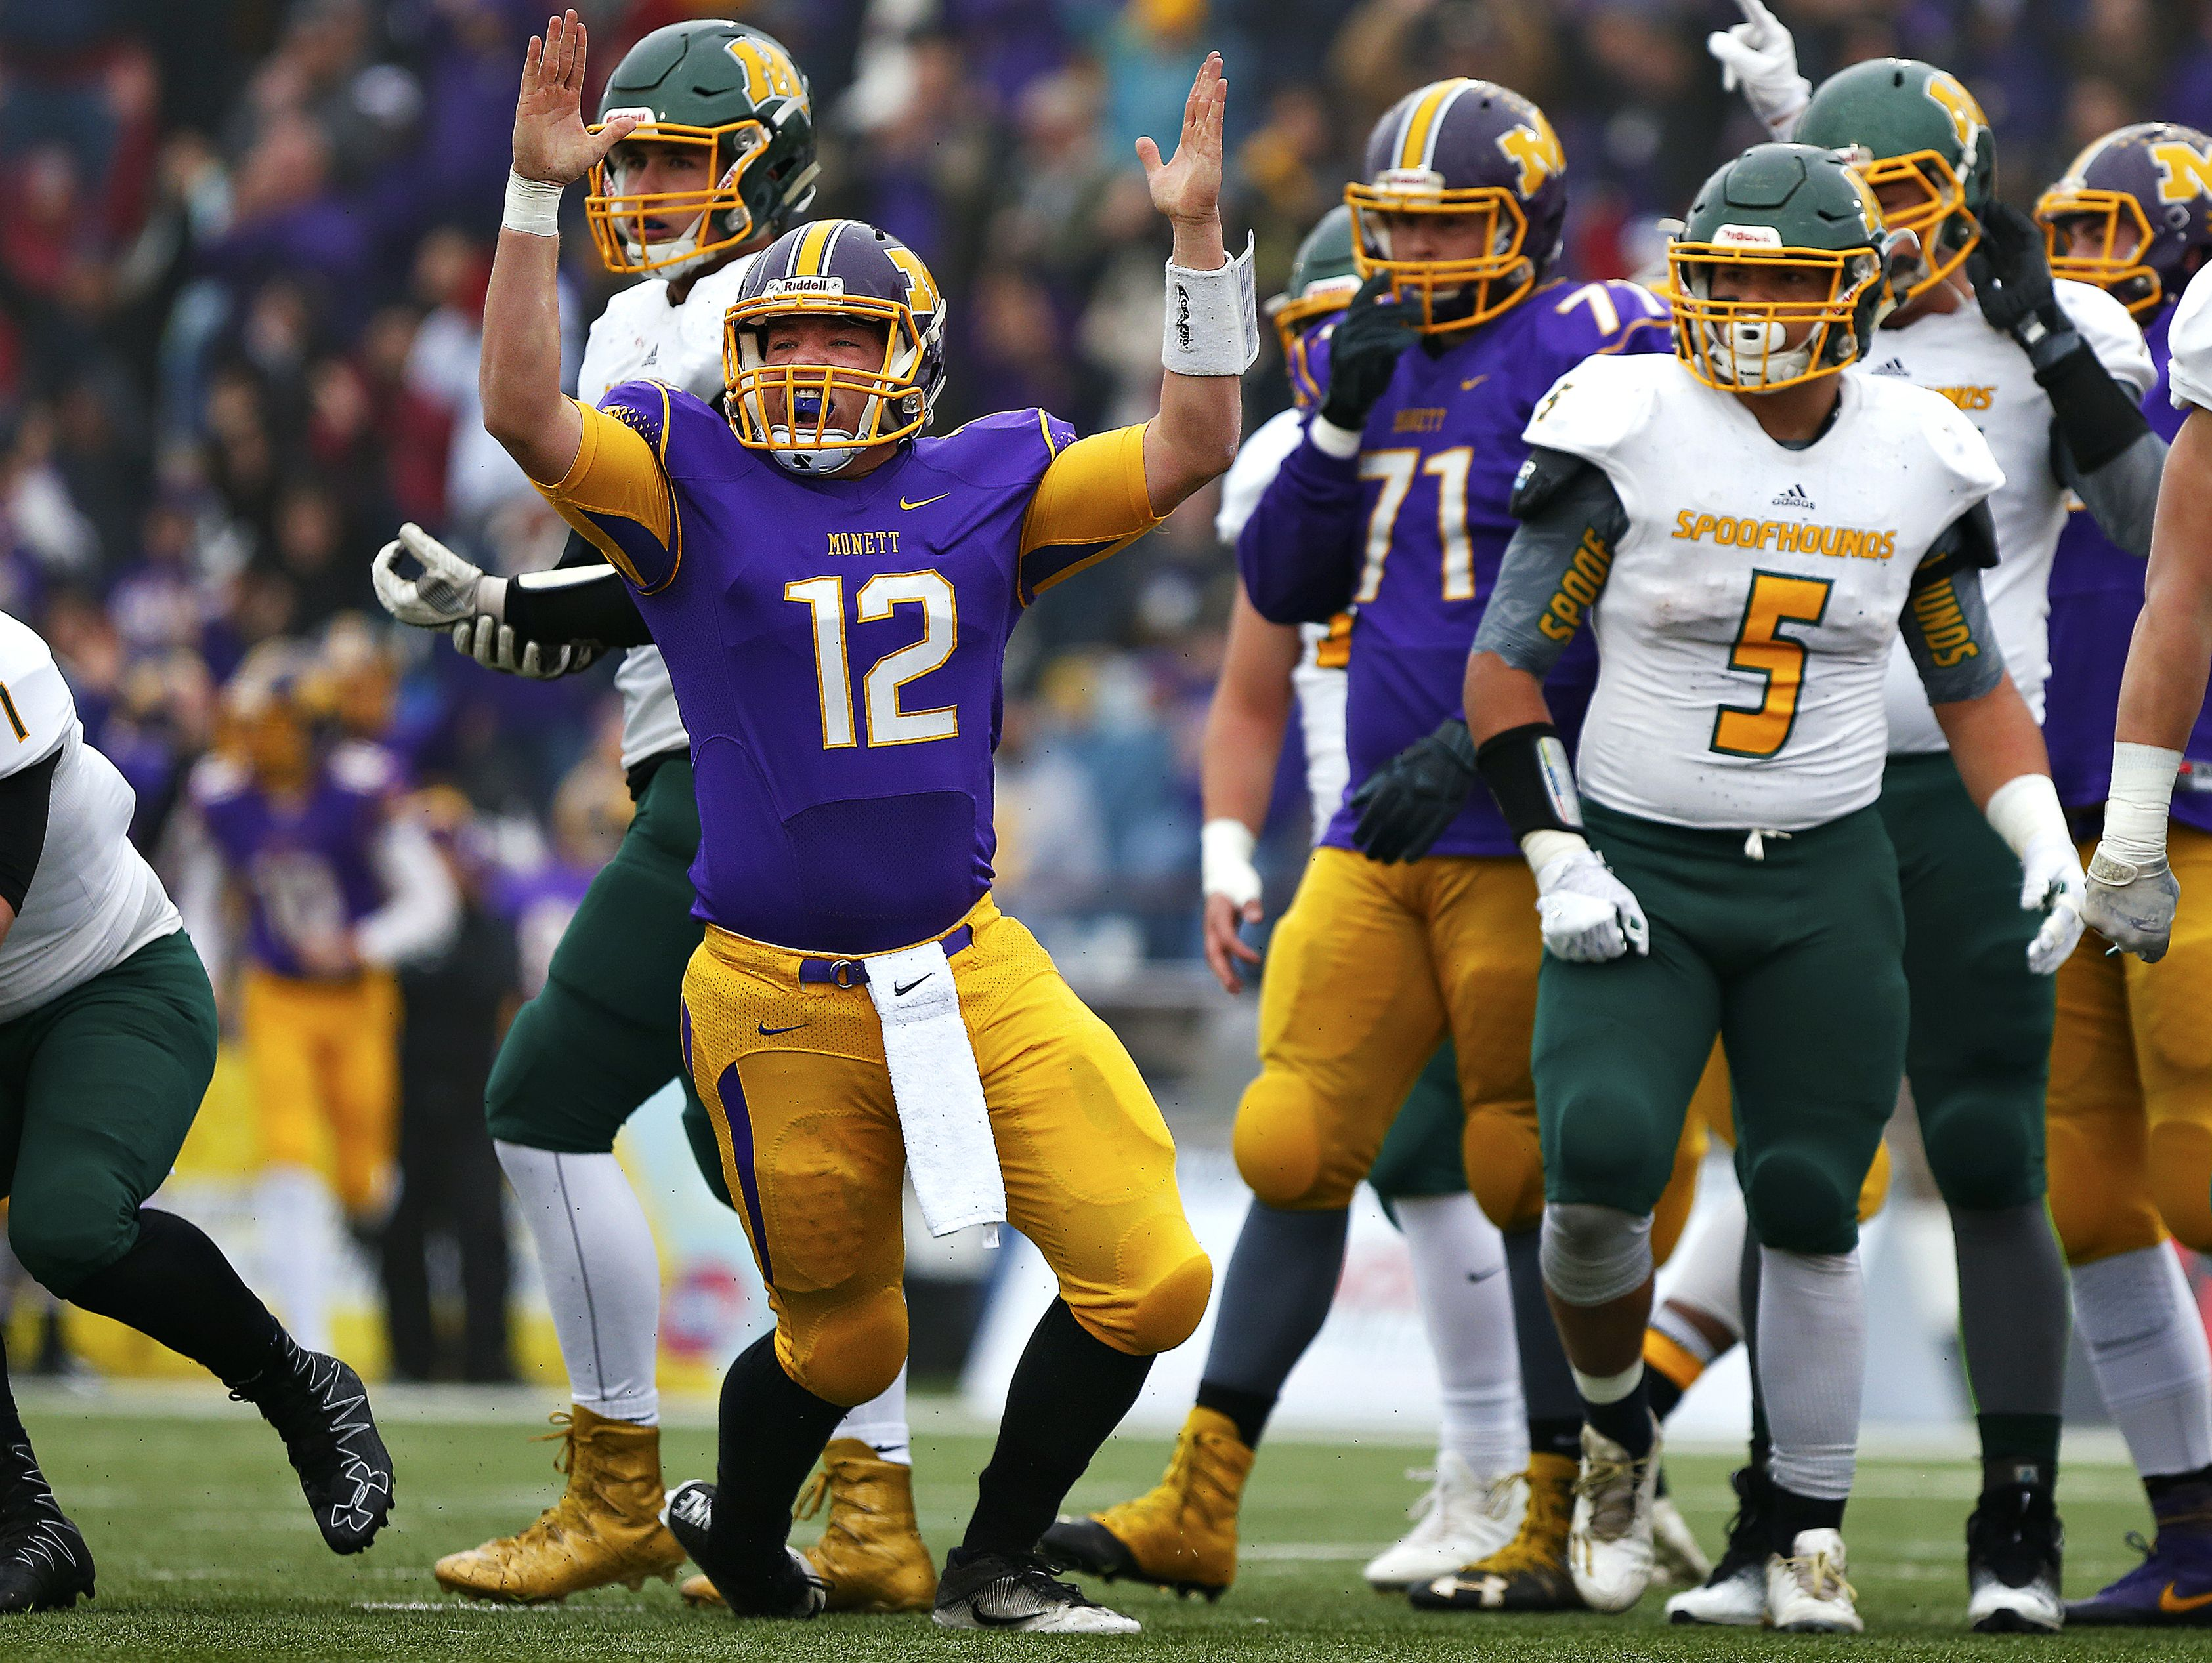 Monett High School quarterback Ian Meyer (12) celebrates after scoring a rushing touchdown during second quarter action of the MSHSAA Class 3 State Championship Game between the Monett High School Cubs and the Maryville High School Spoofhounds at Robert W. Plaster Stadium in Springfield, Mo. on Nov. 26, 2016. The Monett Cubs won the game 27-18.